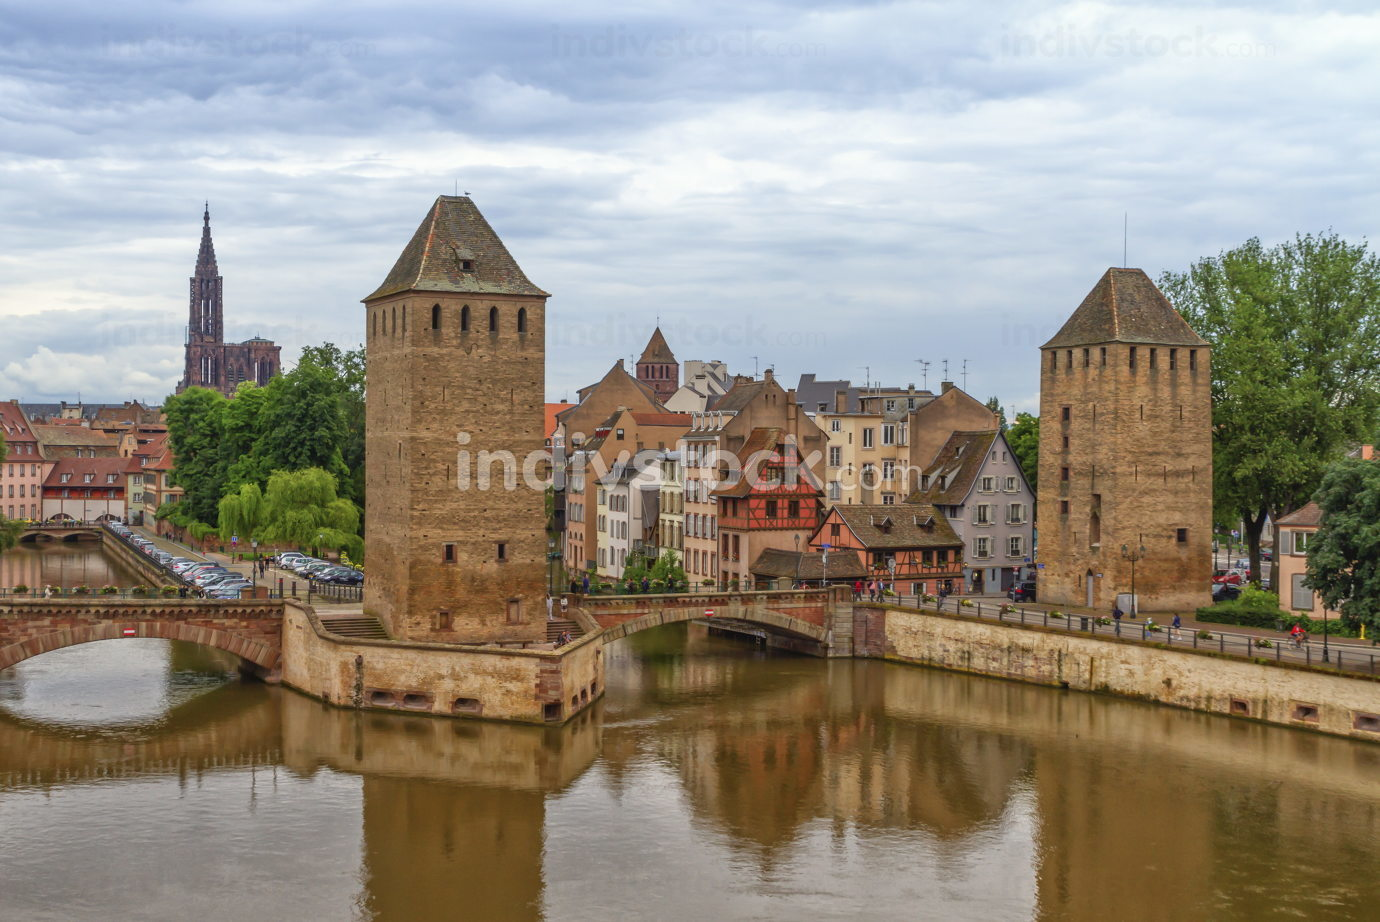 The twin watchtowers of the Ponts Couverts, Strasbourg, France